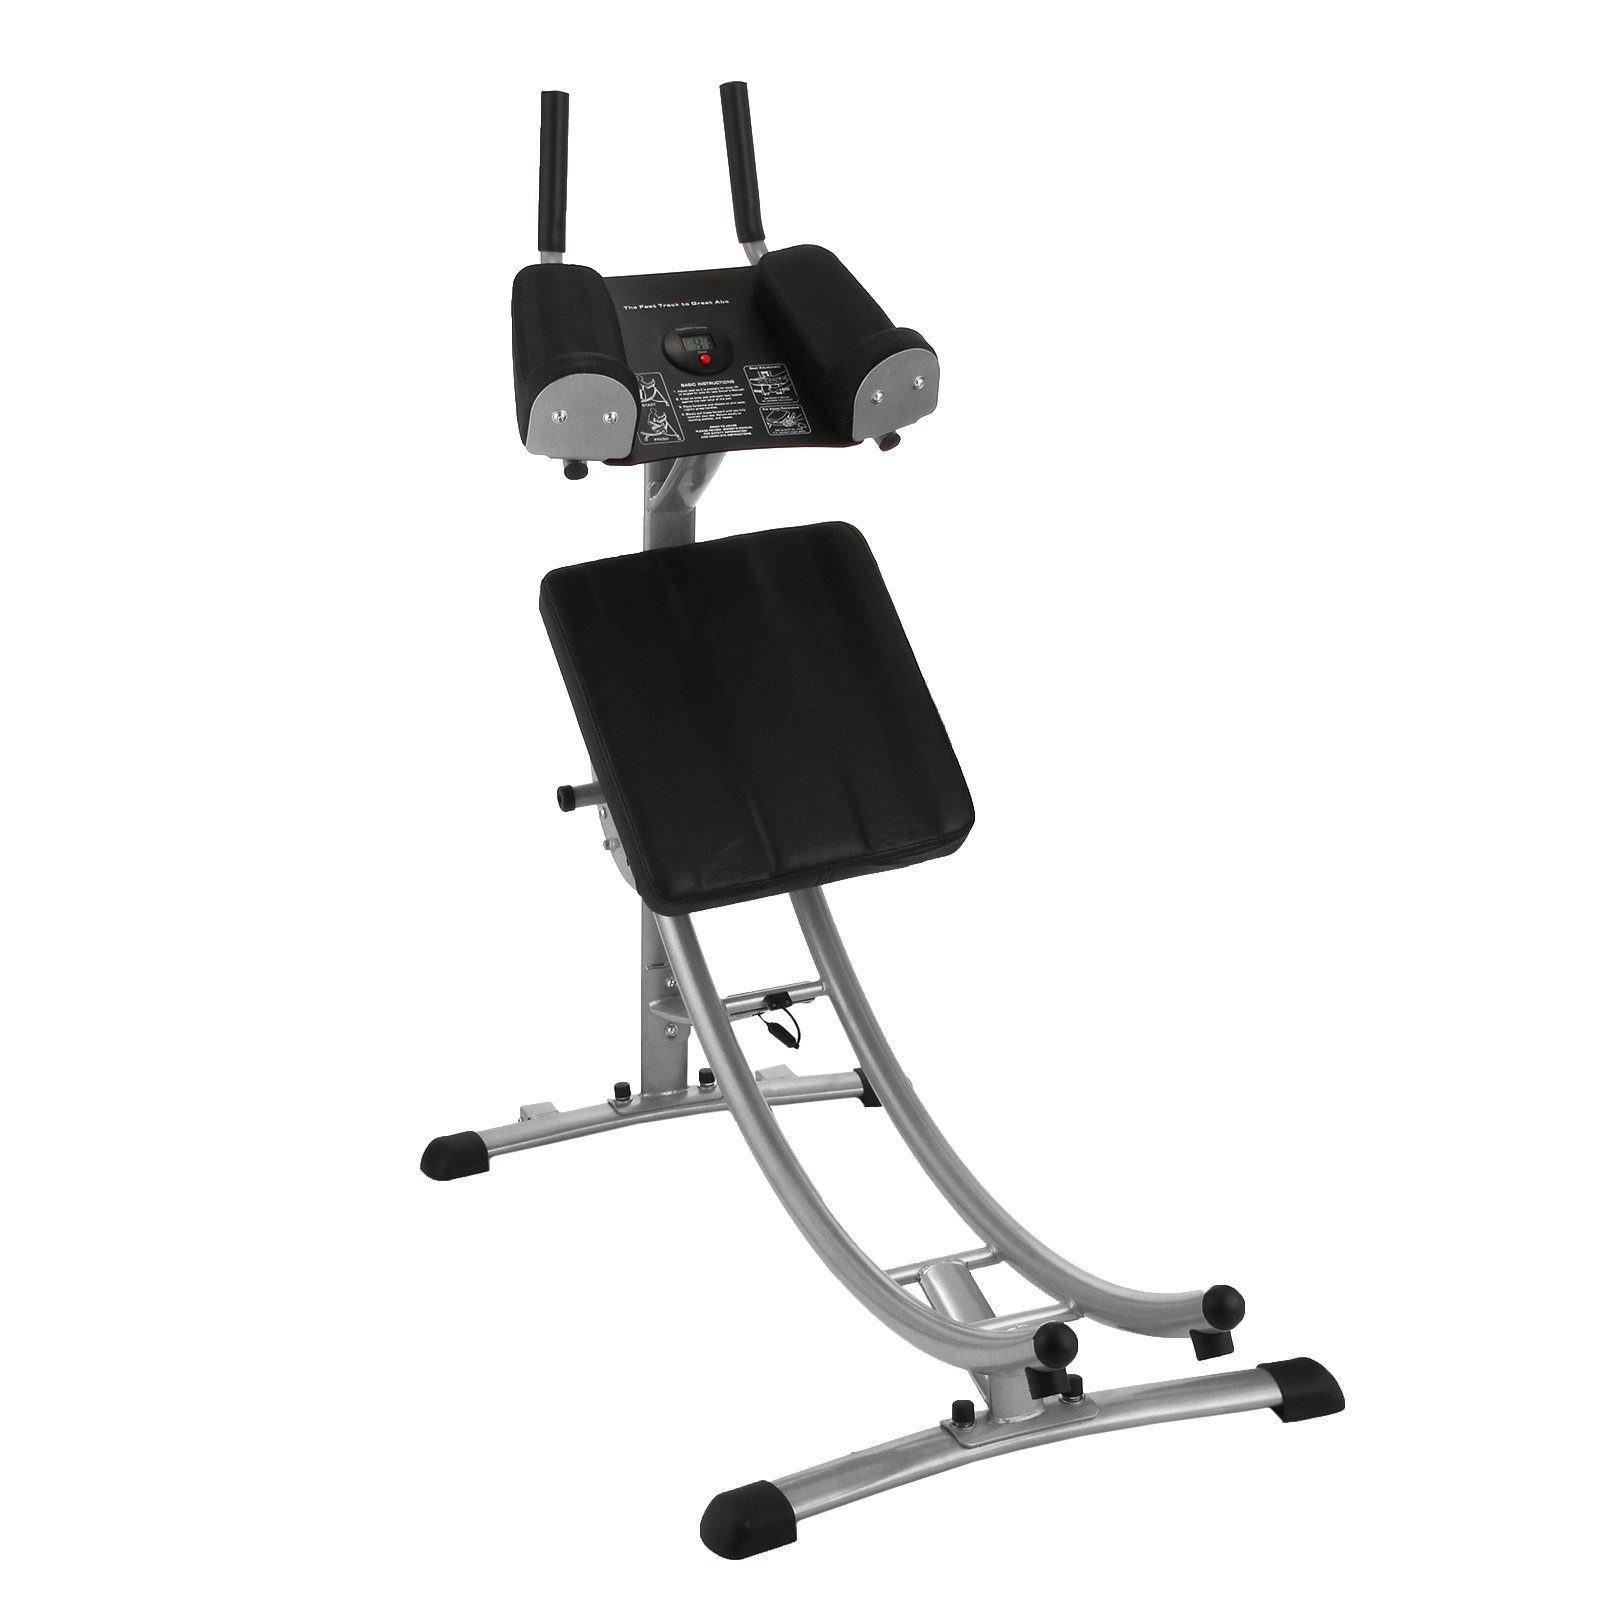 Popsport Abdomen Machine 330LBS Abdominal Coaster Abdomen Exercise Equipment with Adjustable Seat and Electronic Digital Counter for Abdominal Muscle Training (GSC-02 ab coaster) by Popsport (Image #5)